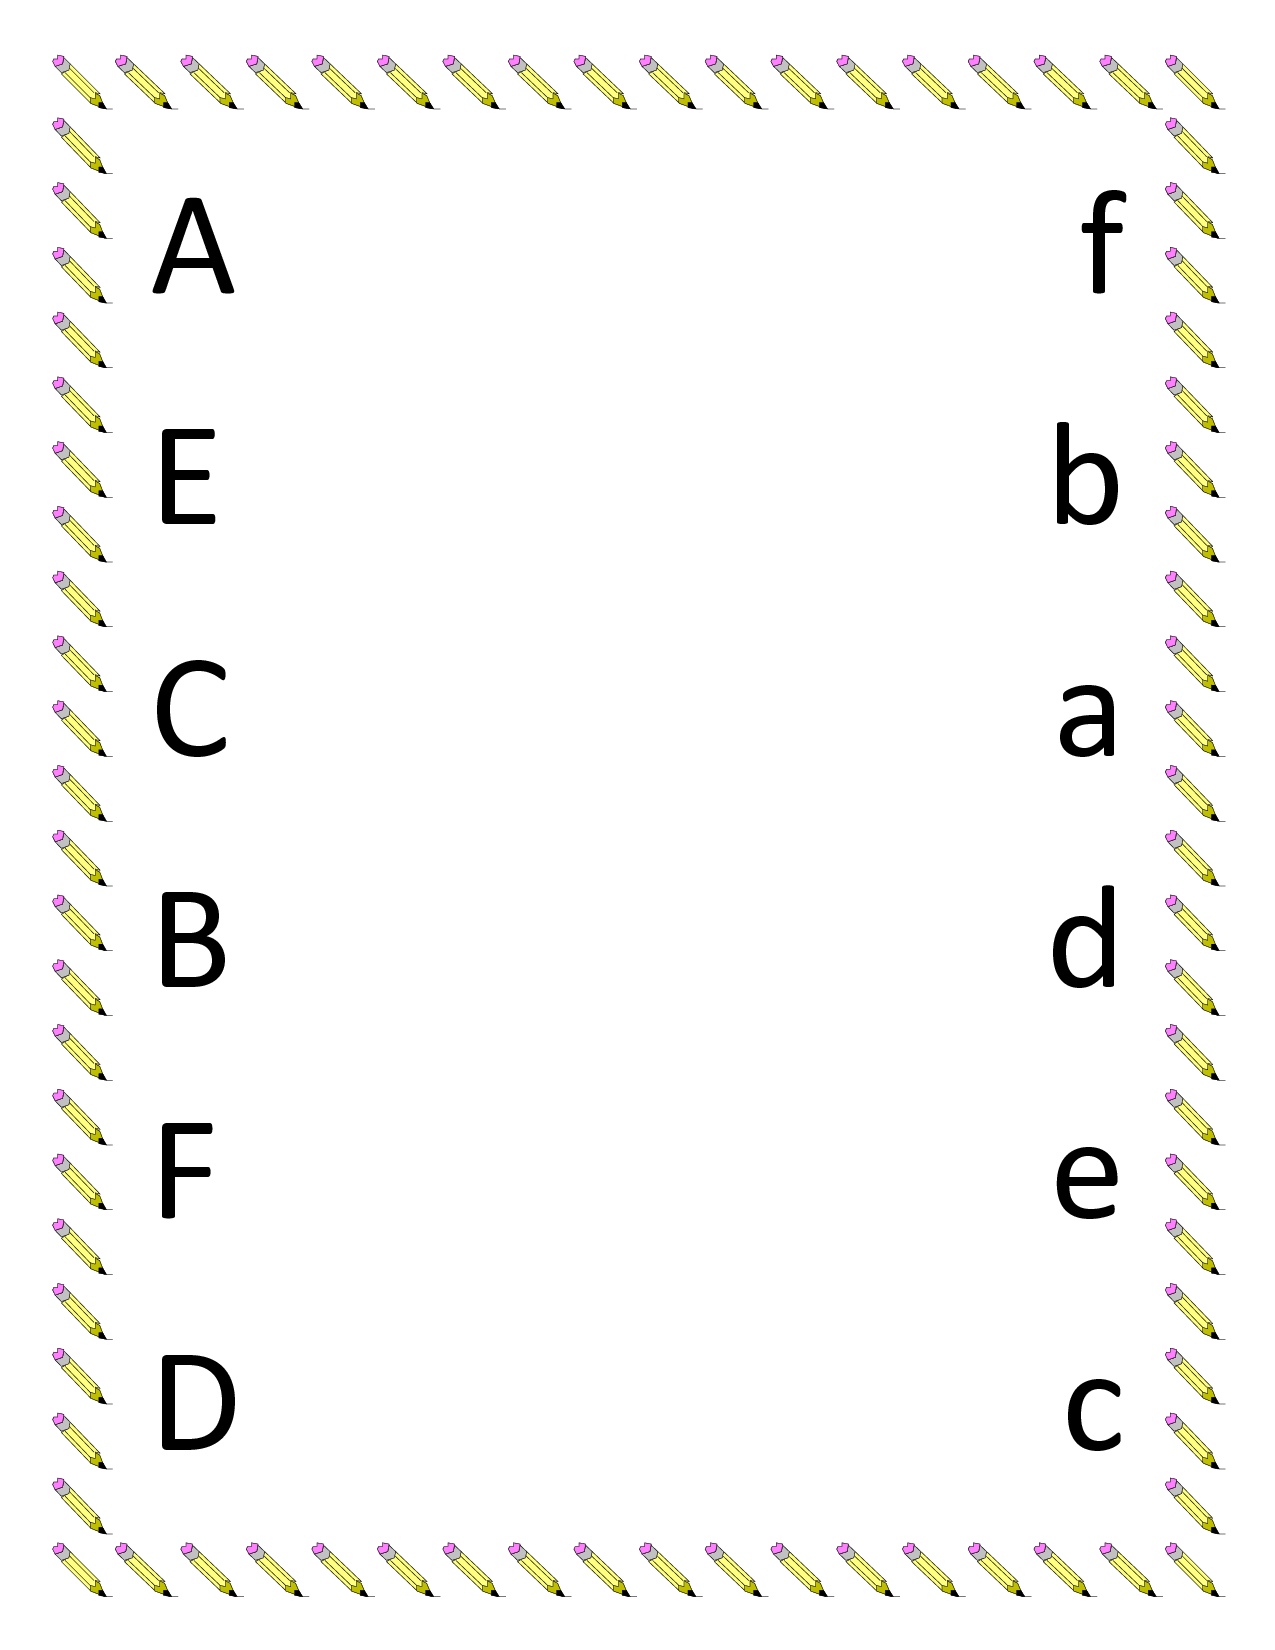 Worksheets Alphabet Worksheets For Pre-k Free kindergarten worksheets preschool printables for image detail matching upper lowercase letter a f